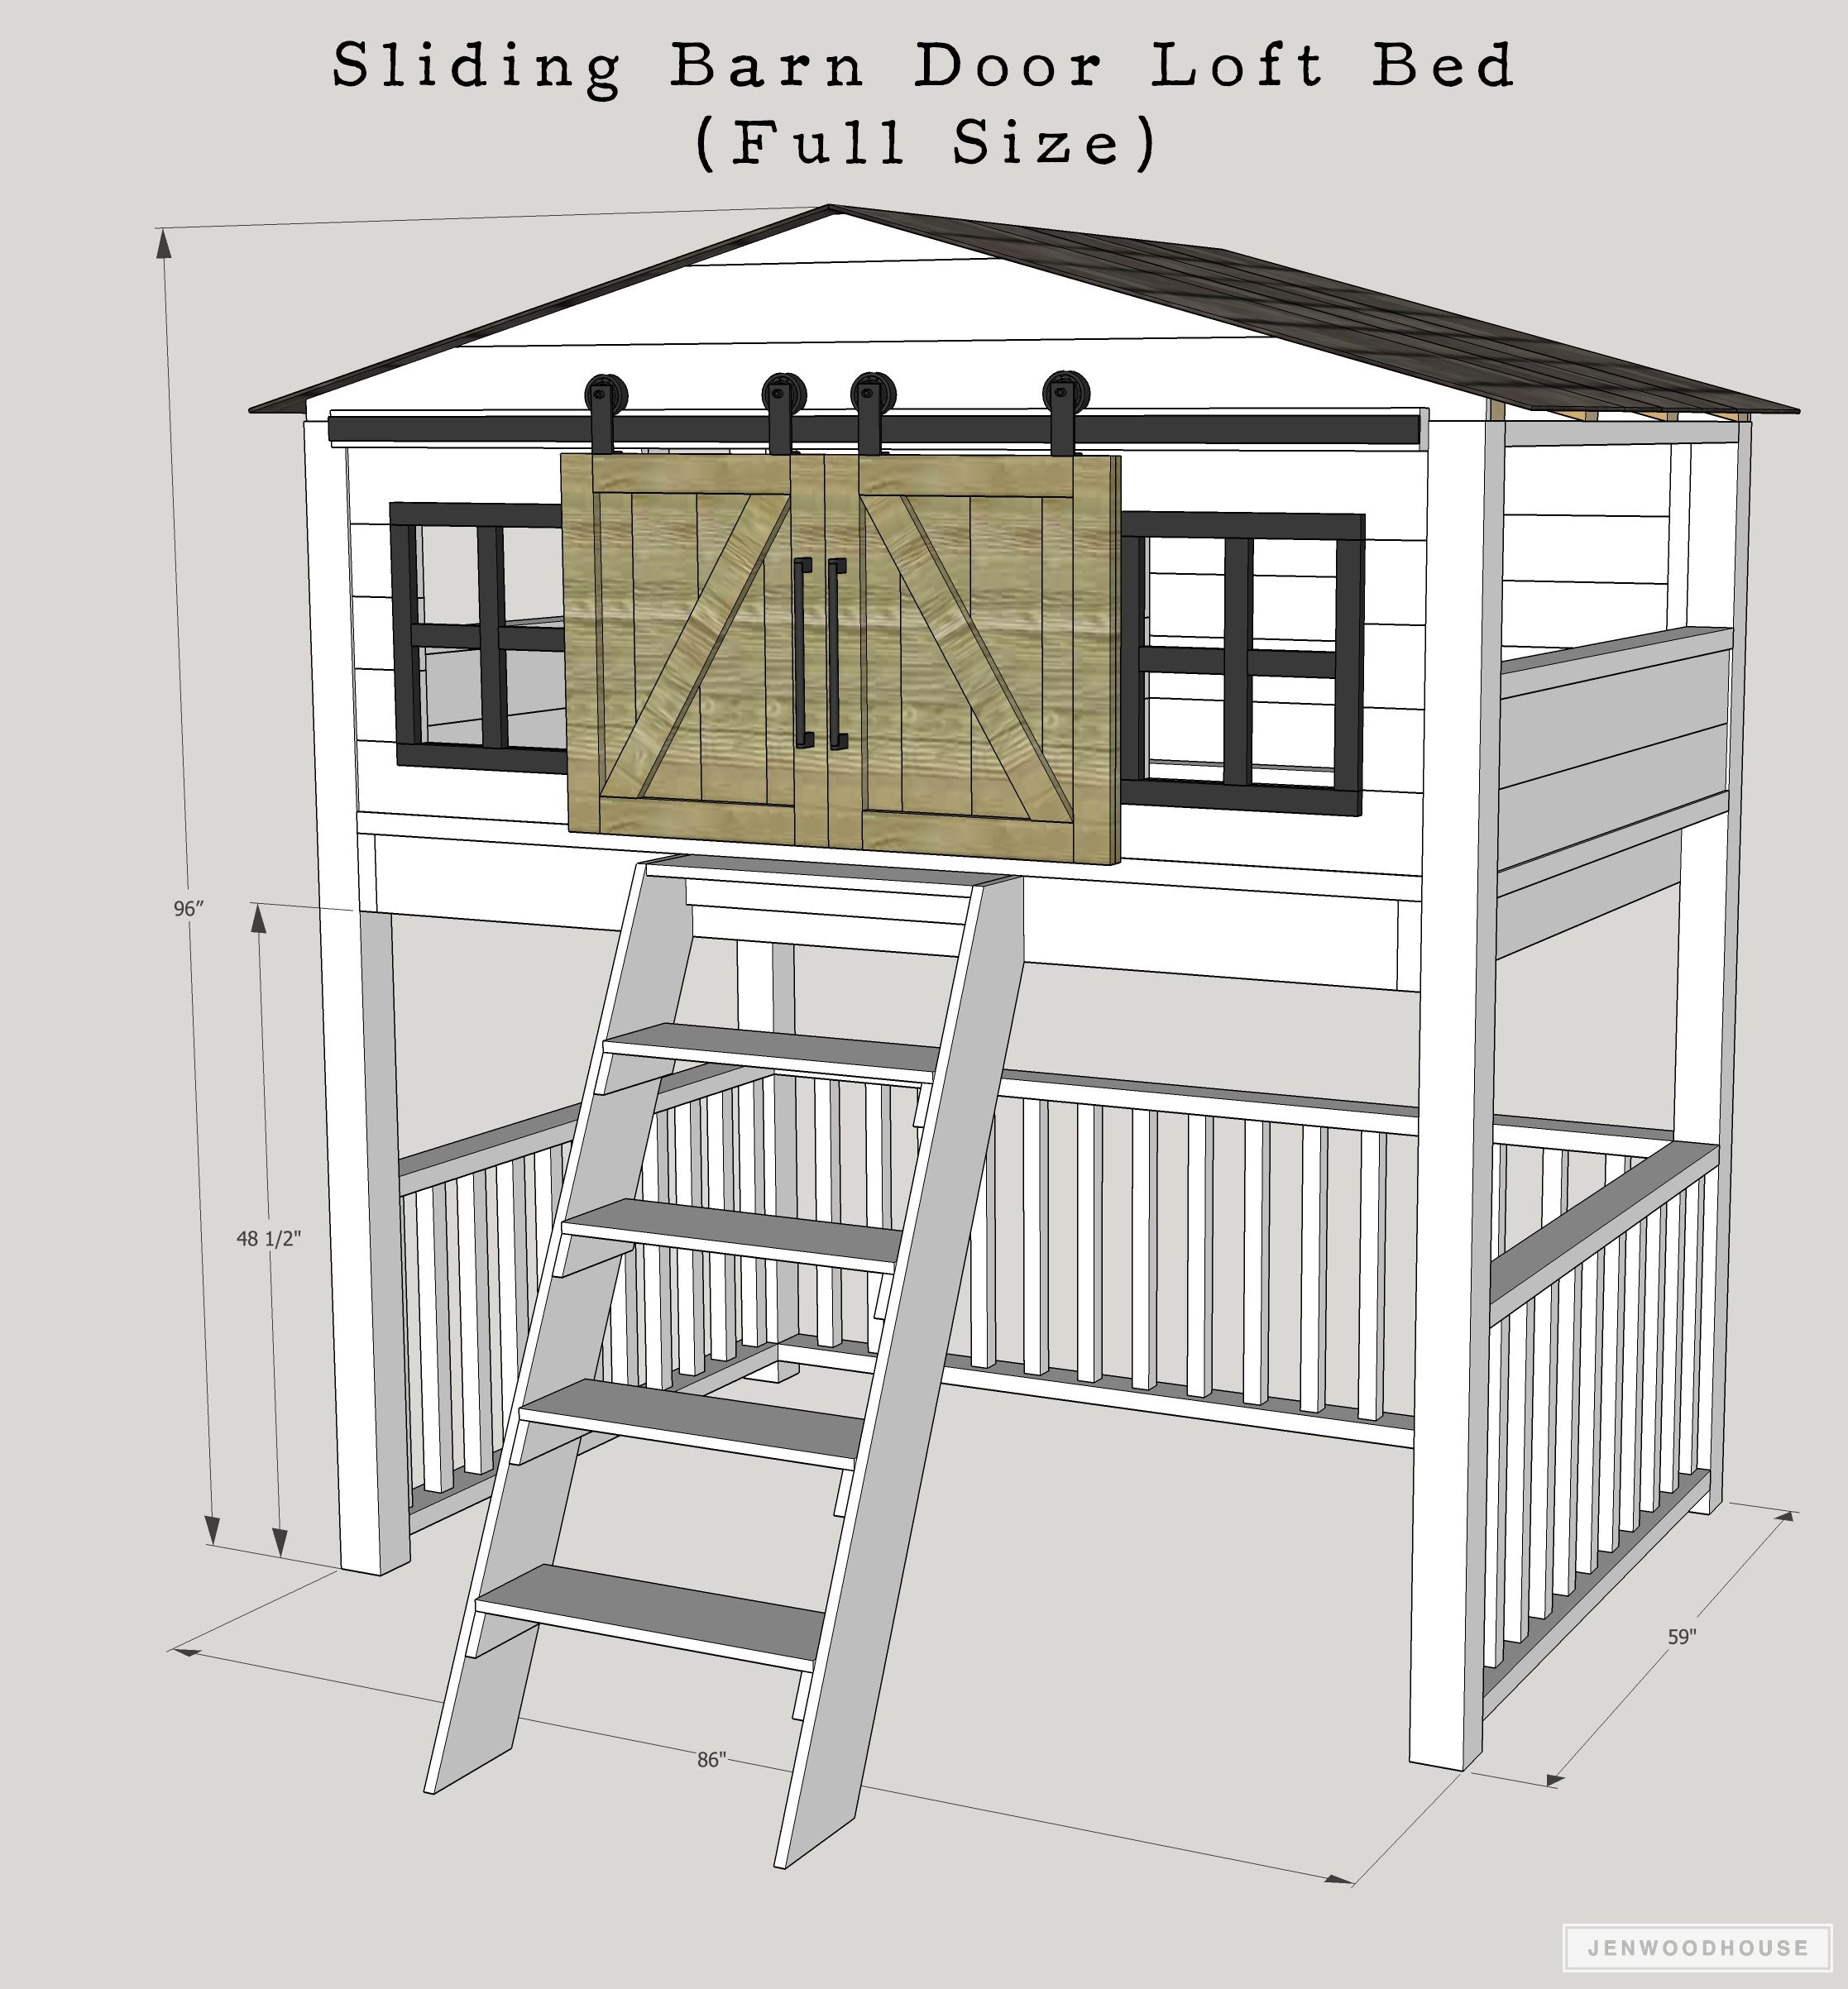 King size loft bed with stairs  How To Build A DIY Sliding Barn Door Loft Bed Full Size  Bed frames